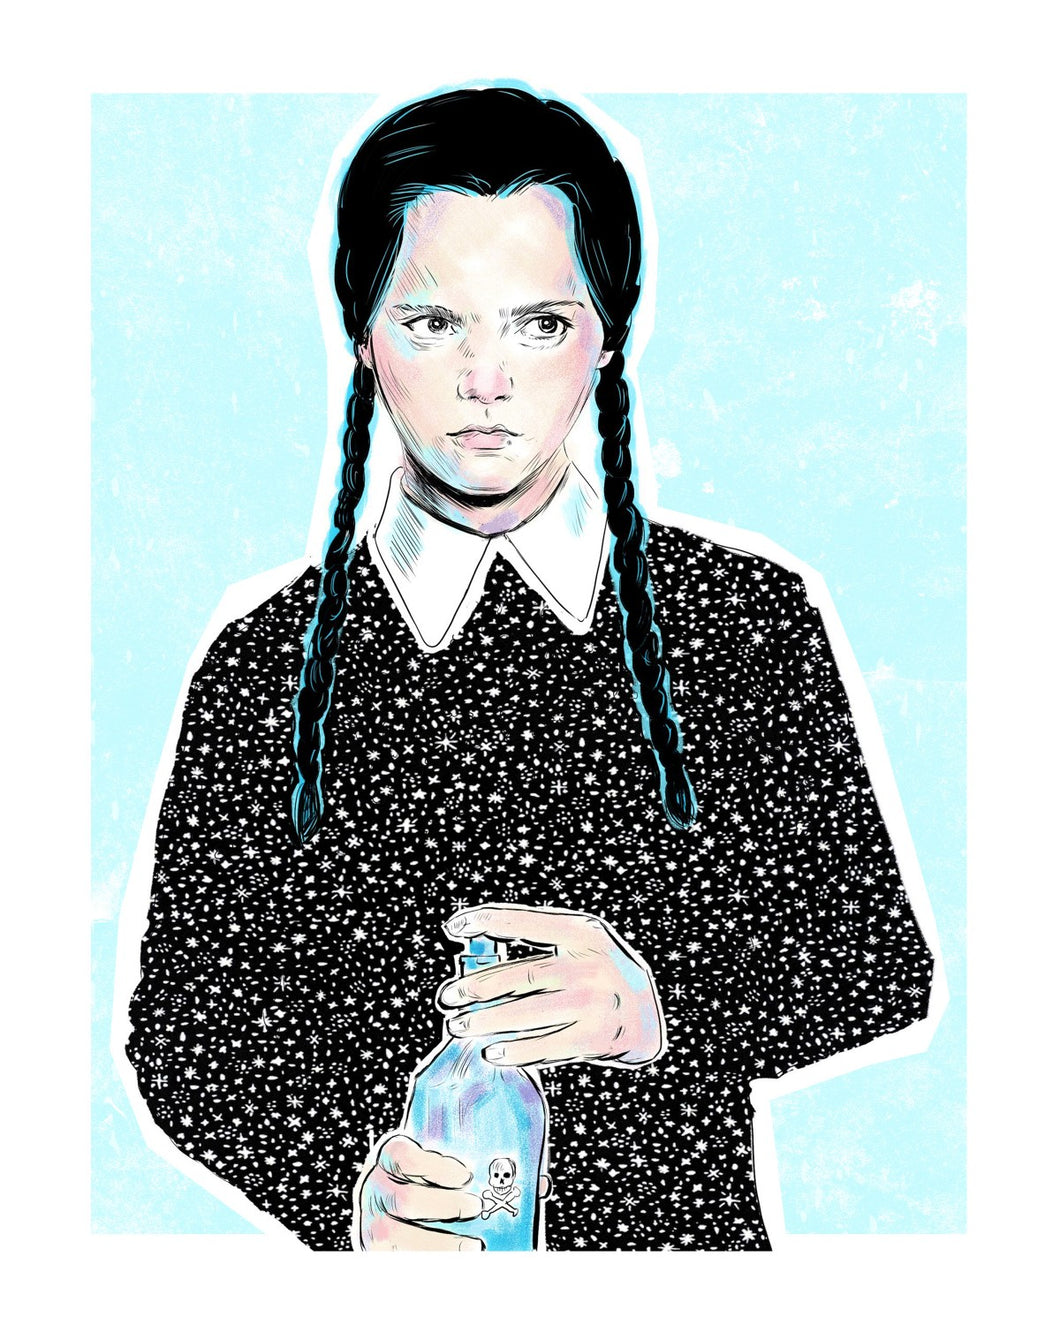 Wednesday Adams 8x10 print